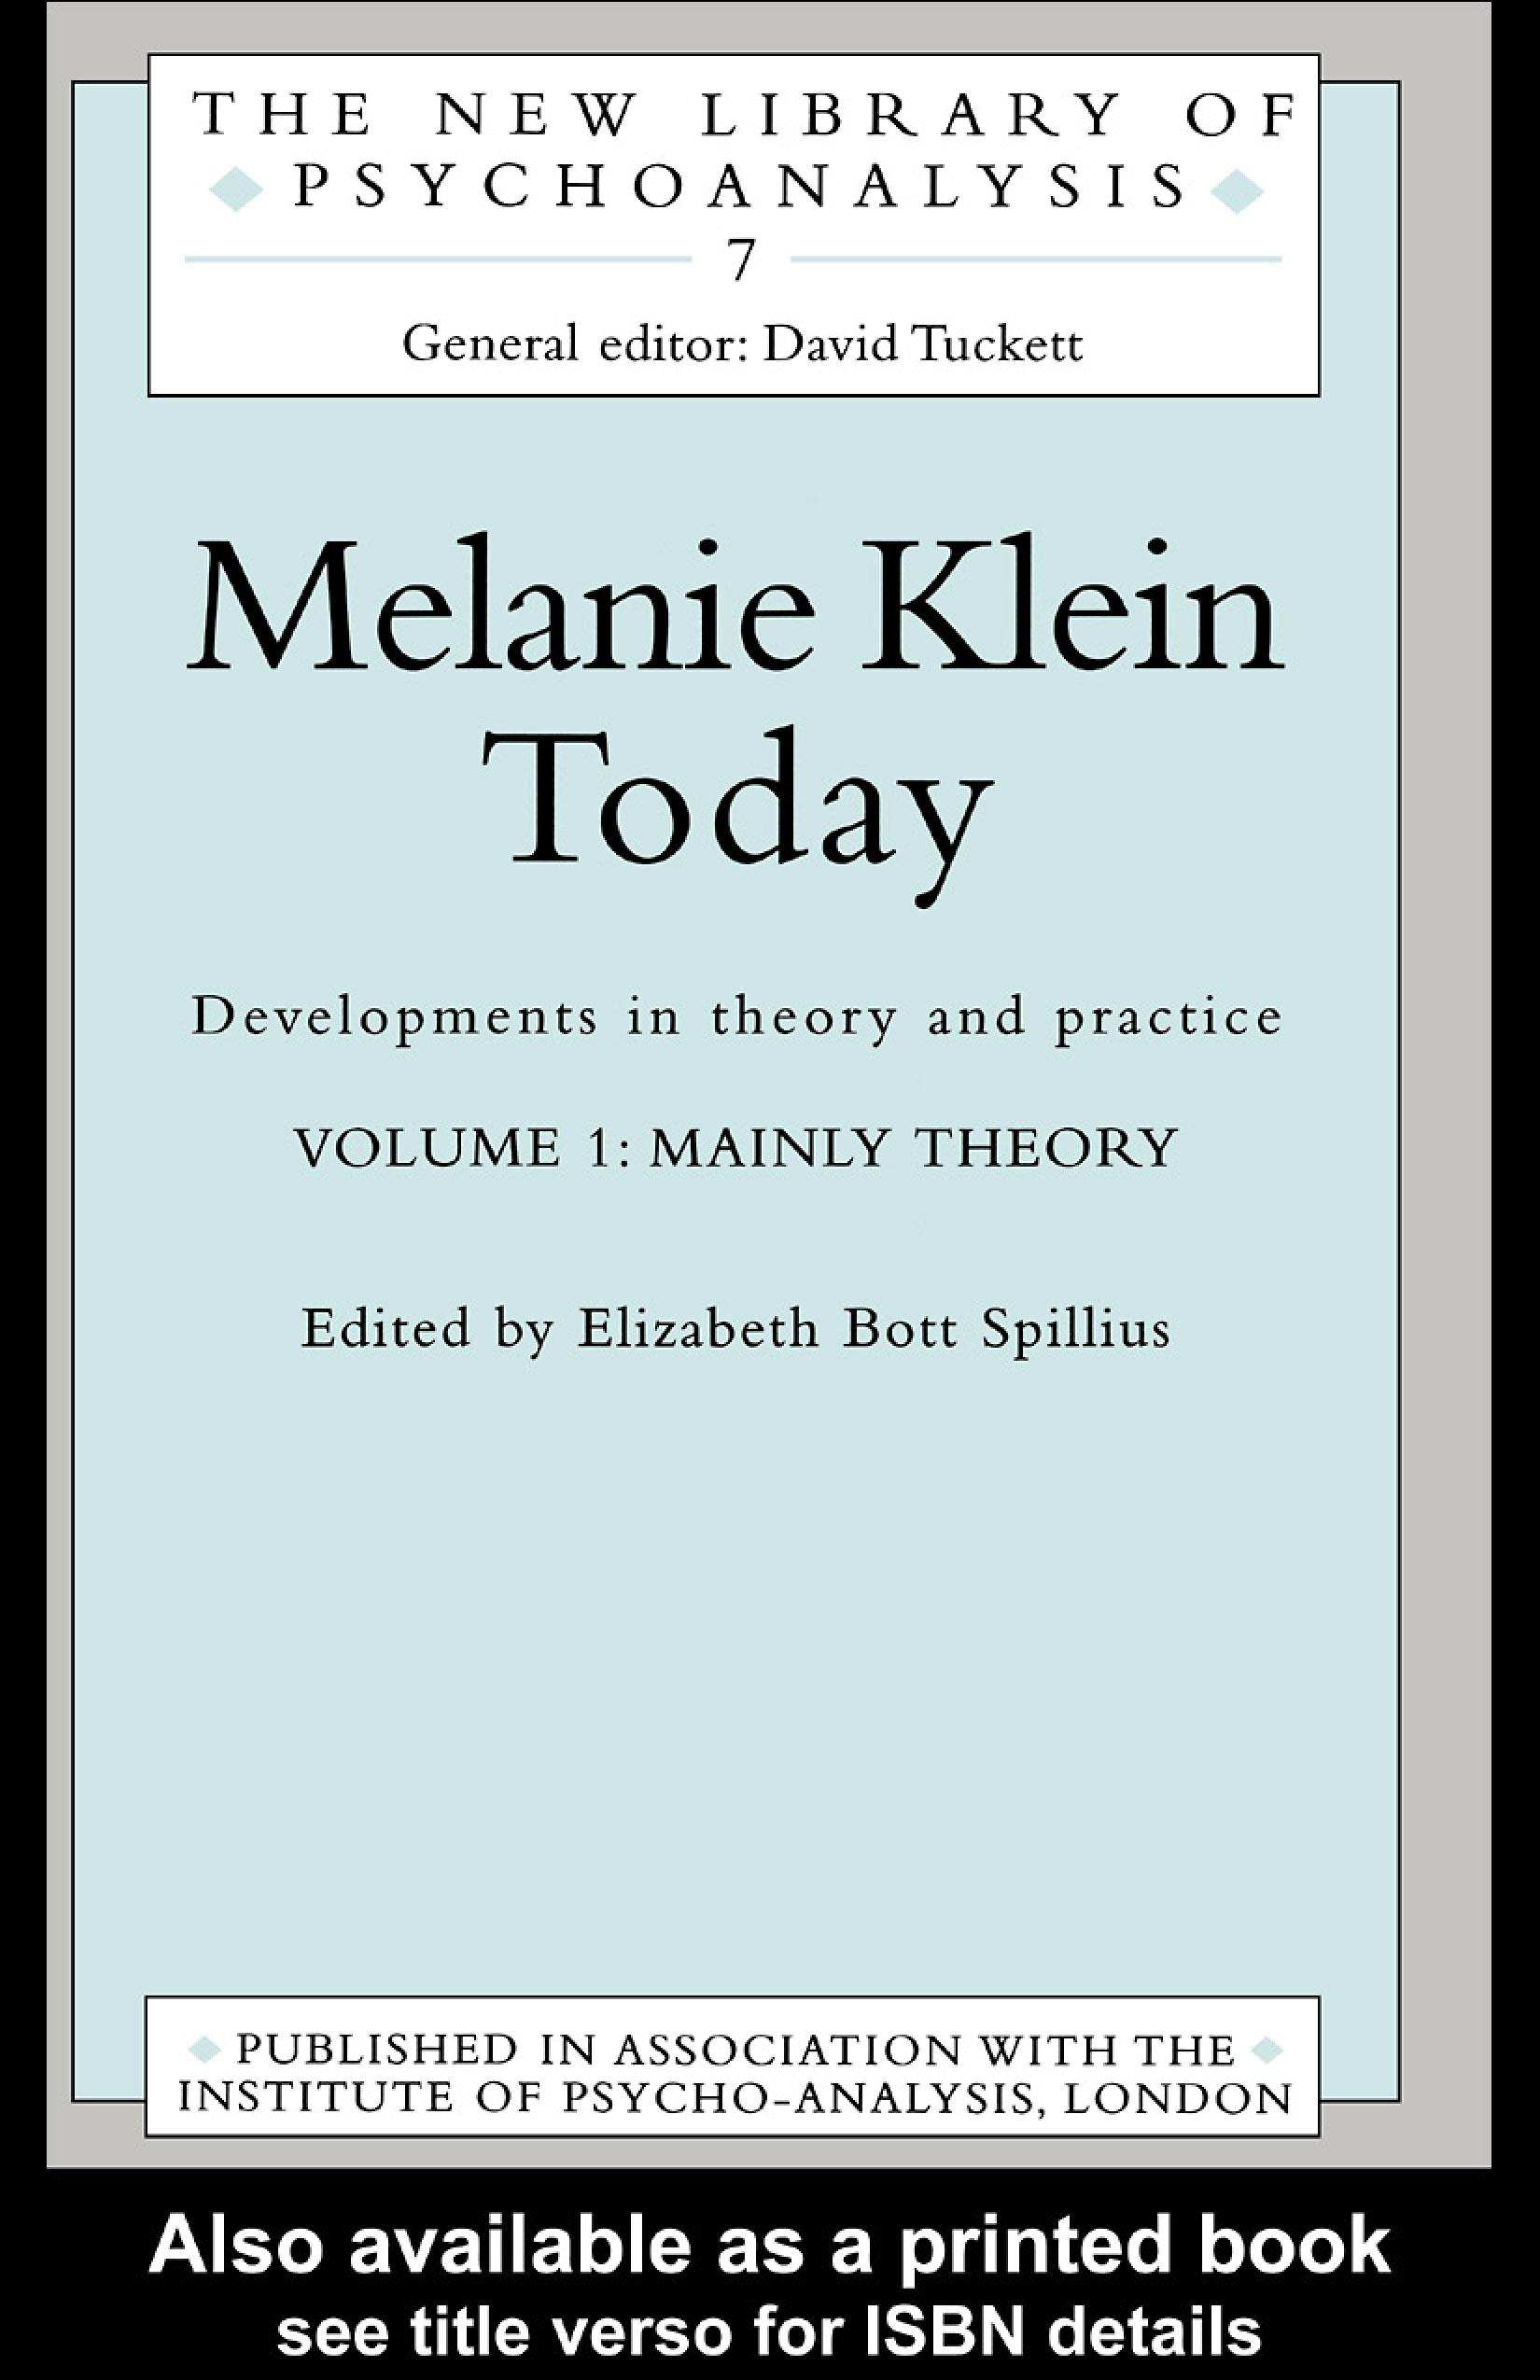 Melanie Klein Today, Volume 1: Mainly Theory: Developments in Theory and Practice